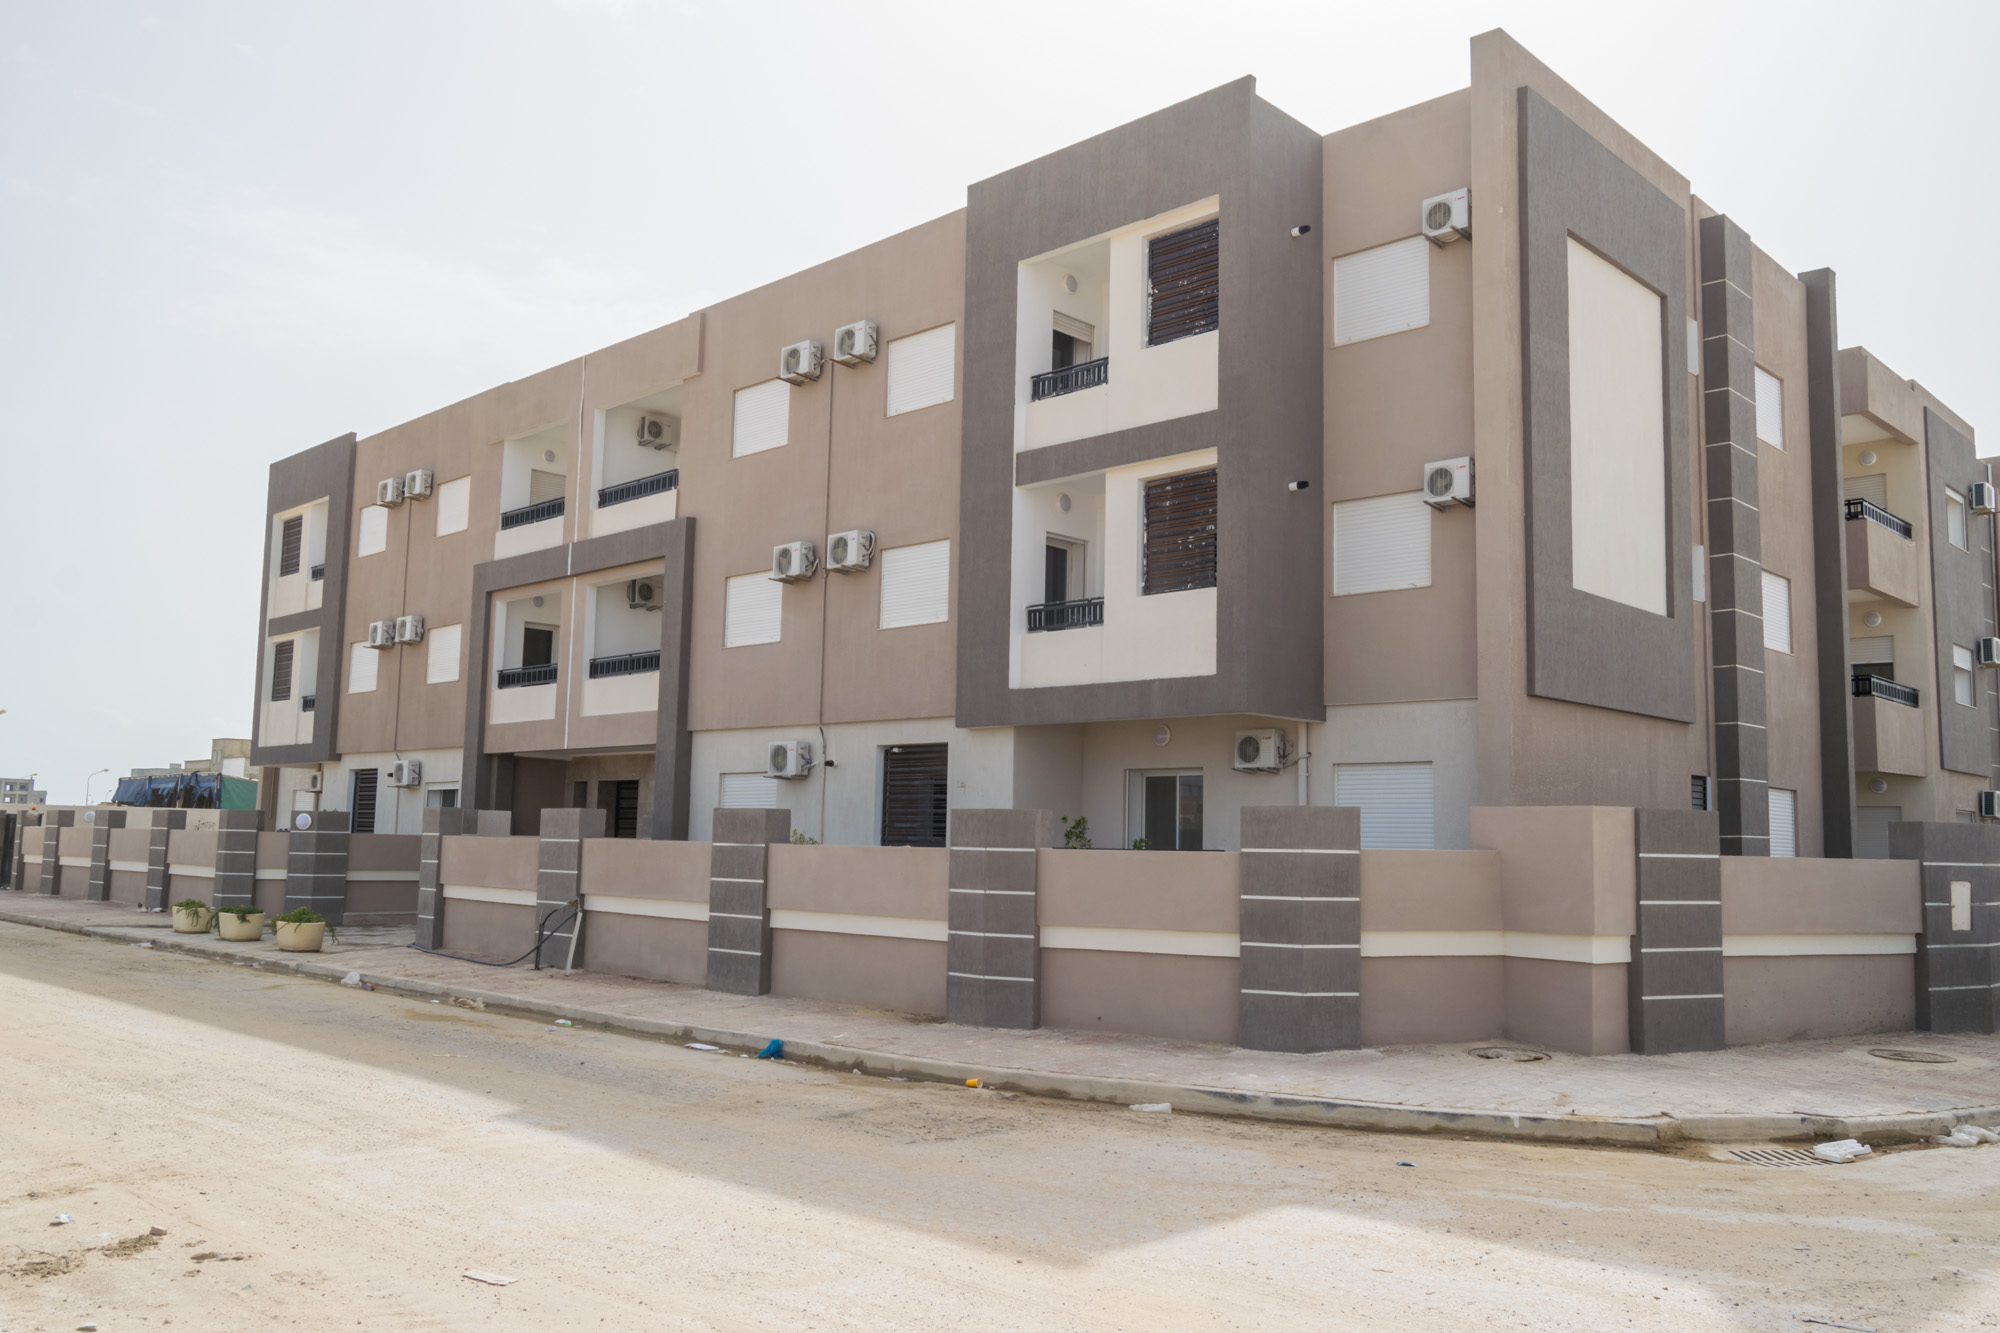 Immobilier neuf tunisie annonces immobili res for Annonce immobiliere appartement